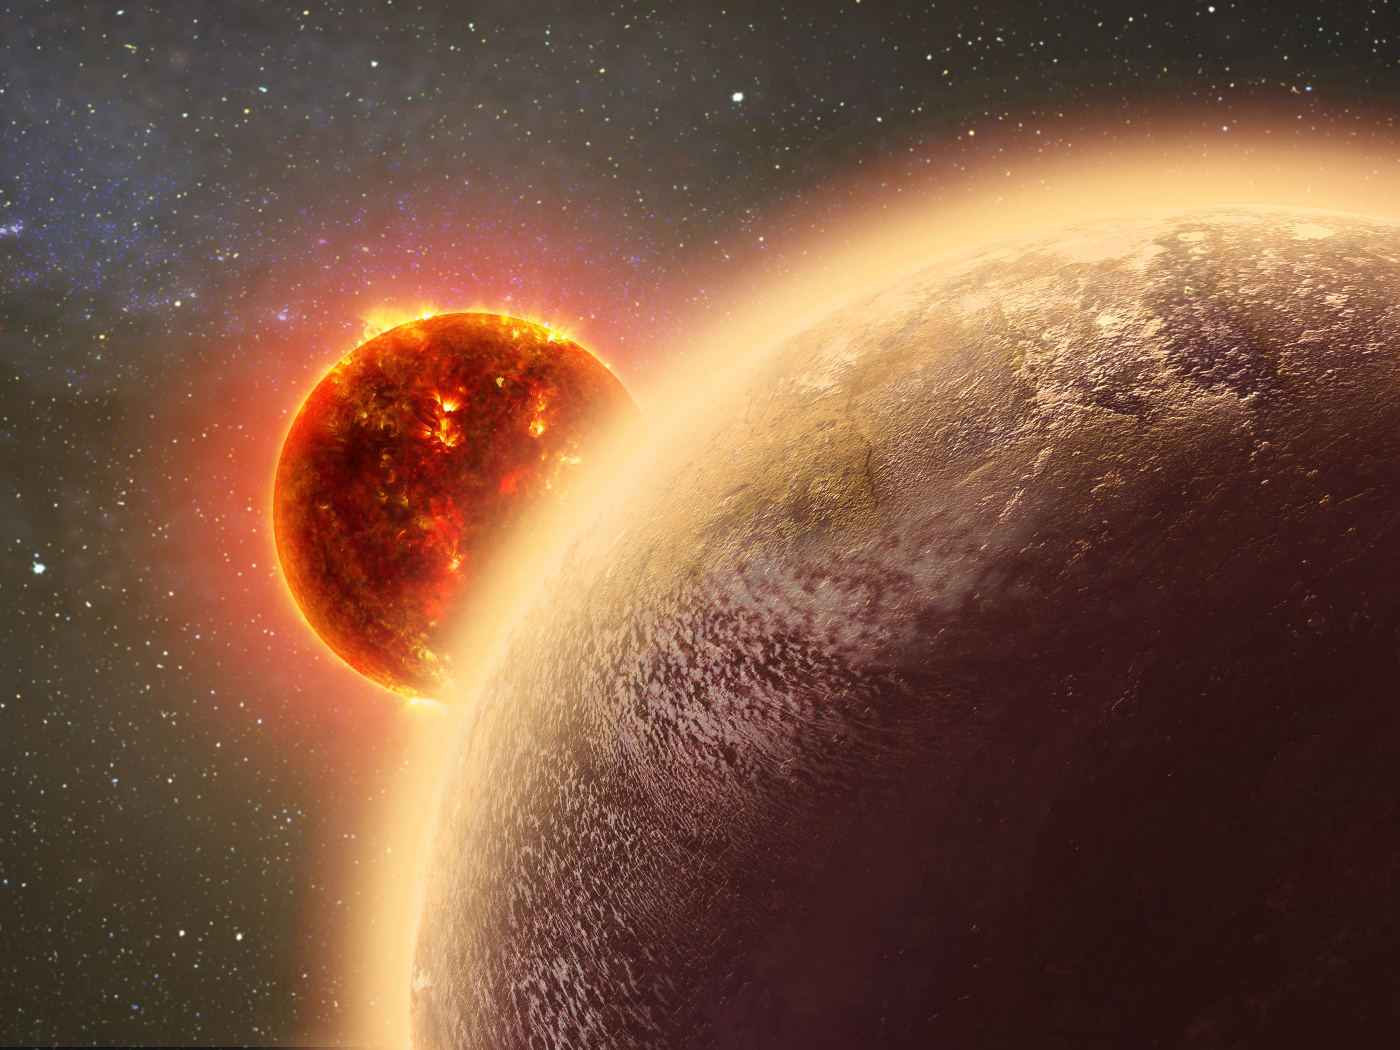 This artist's conception shows the rocky exoplanet GJ 1132b, located 39 light-years from Earth. New research shows that it might possess a thin, oxygen atmosphere — but no life due to its extreme heat. Illustration credit: Dana Berry / Skyworks Digital / CfA.